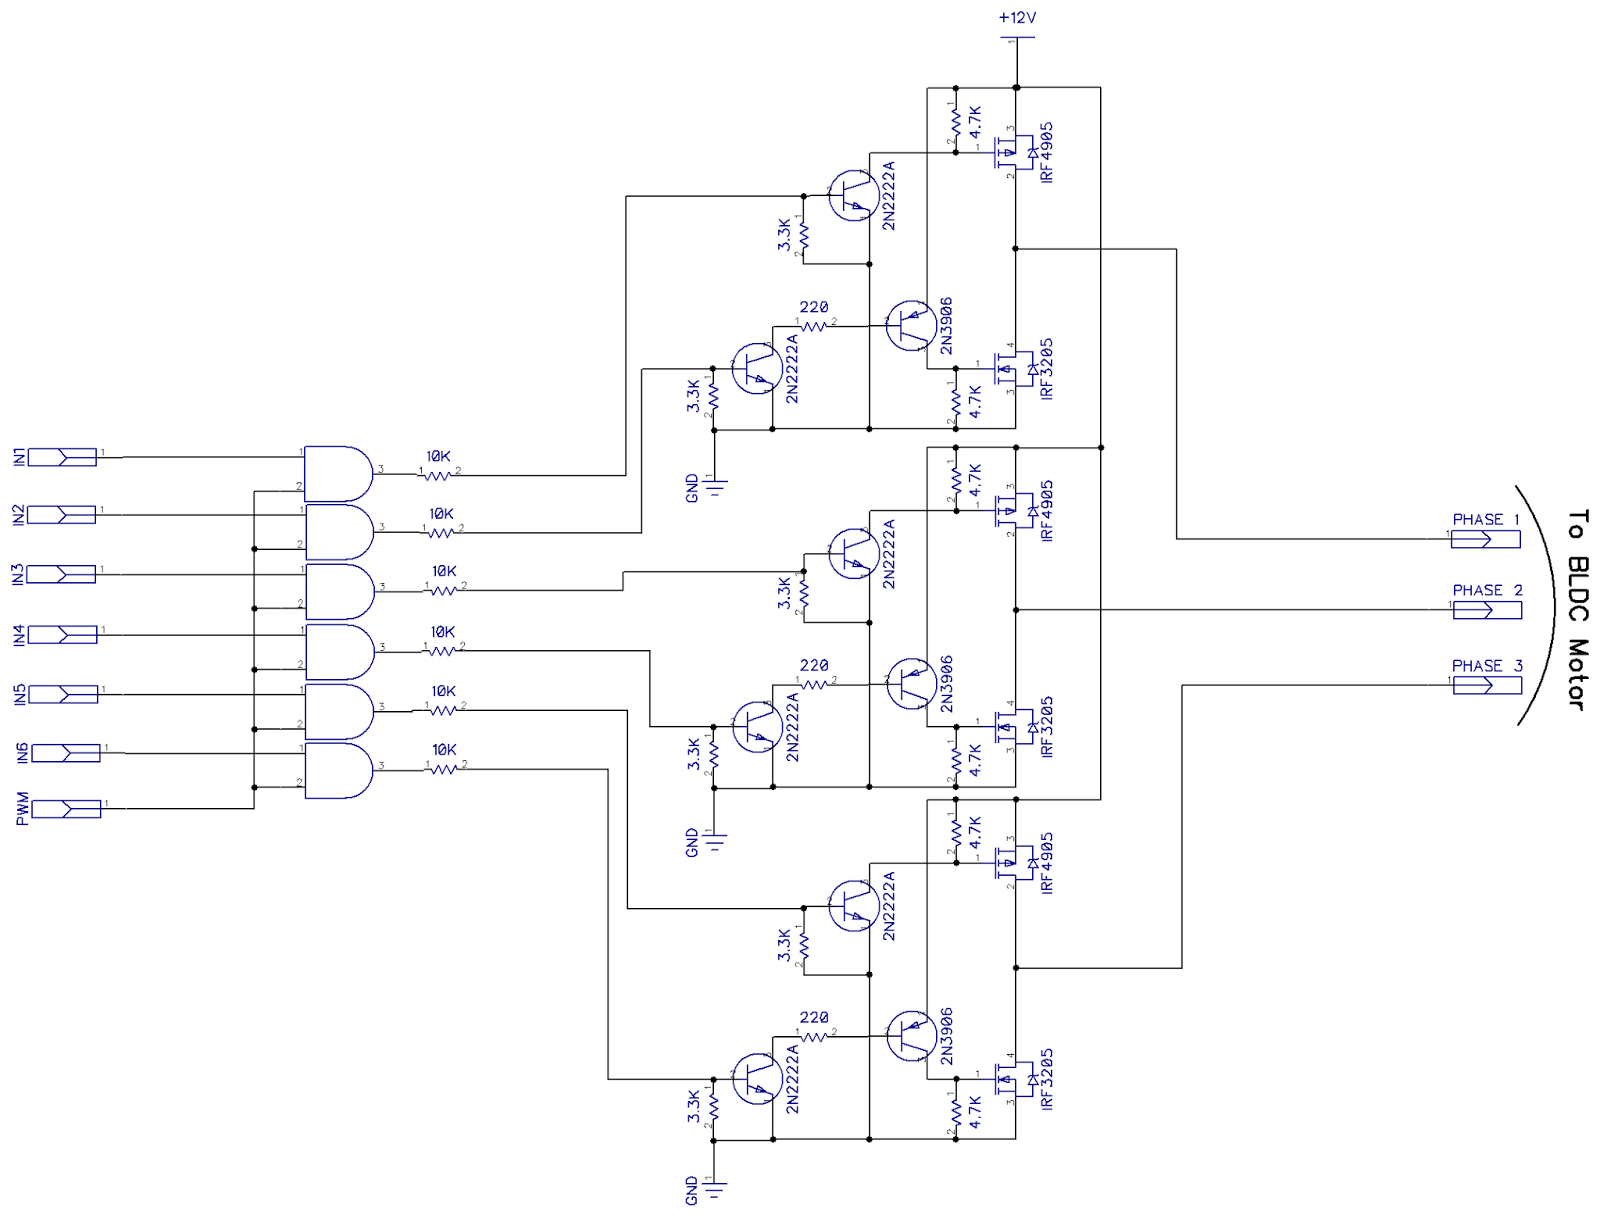 the limit switch wiring schematic for 2 switches is shown below